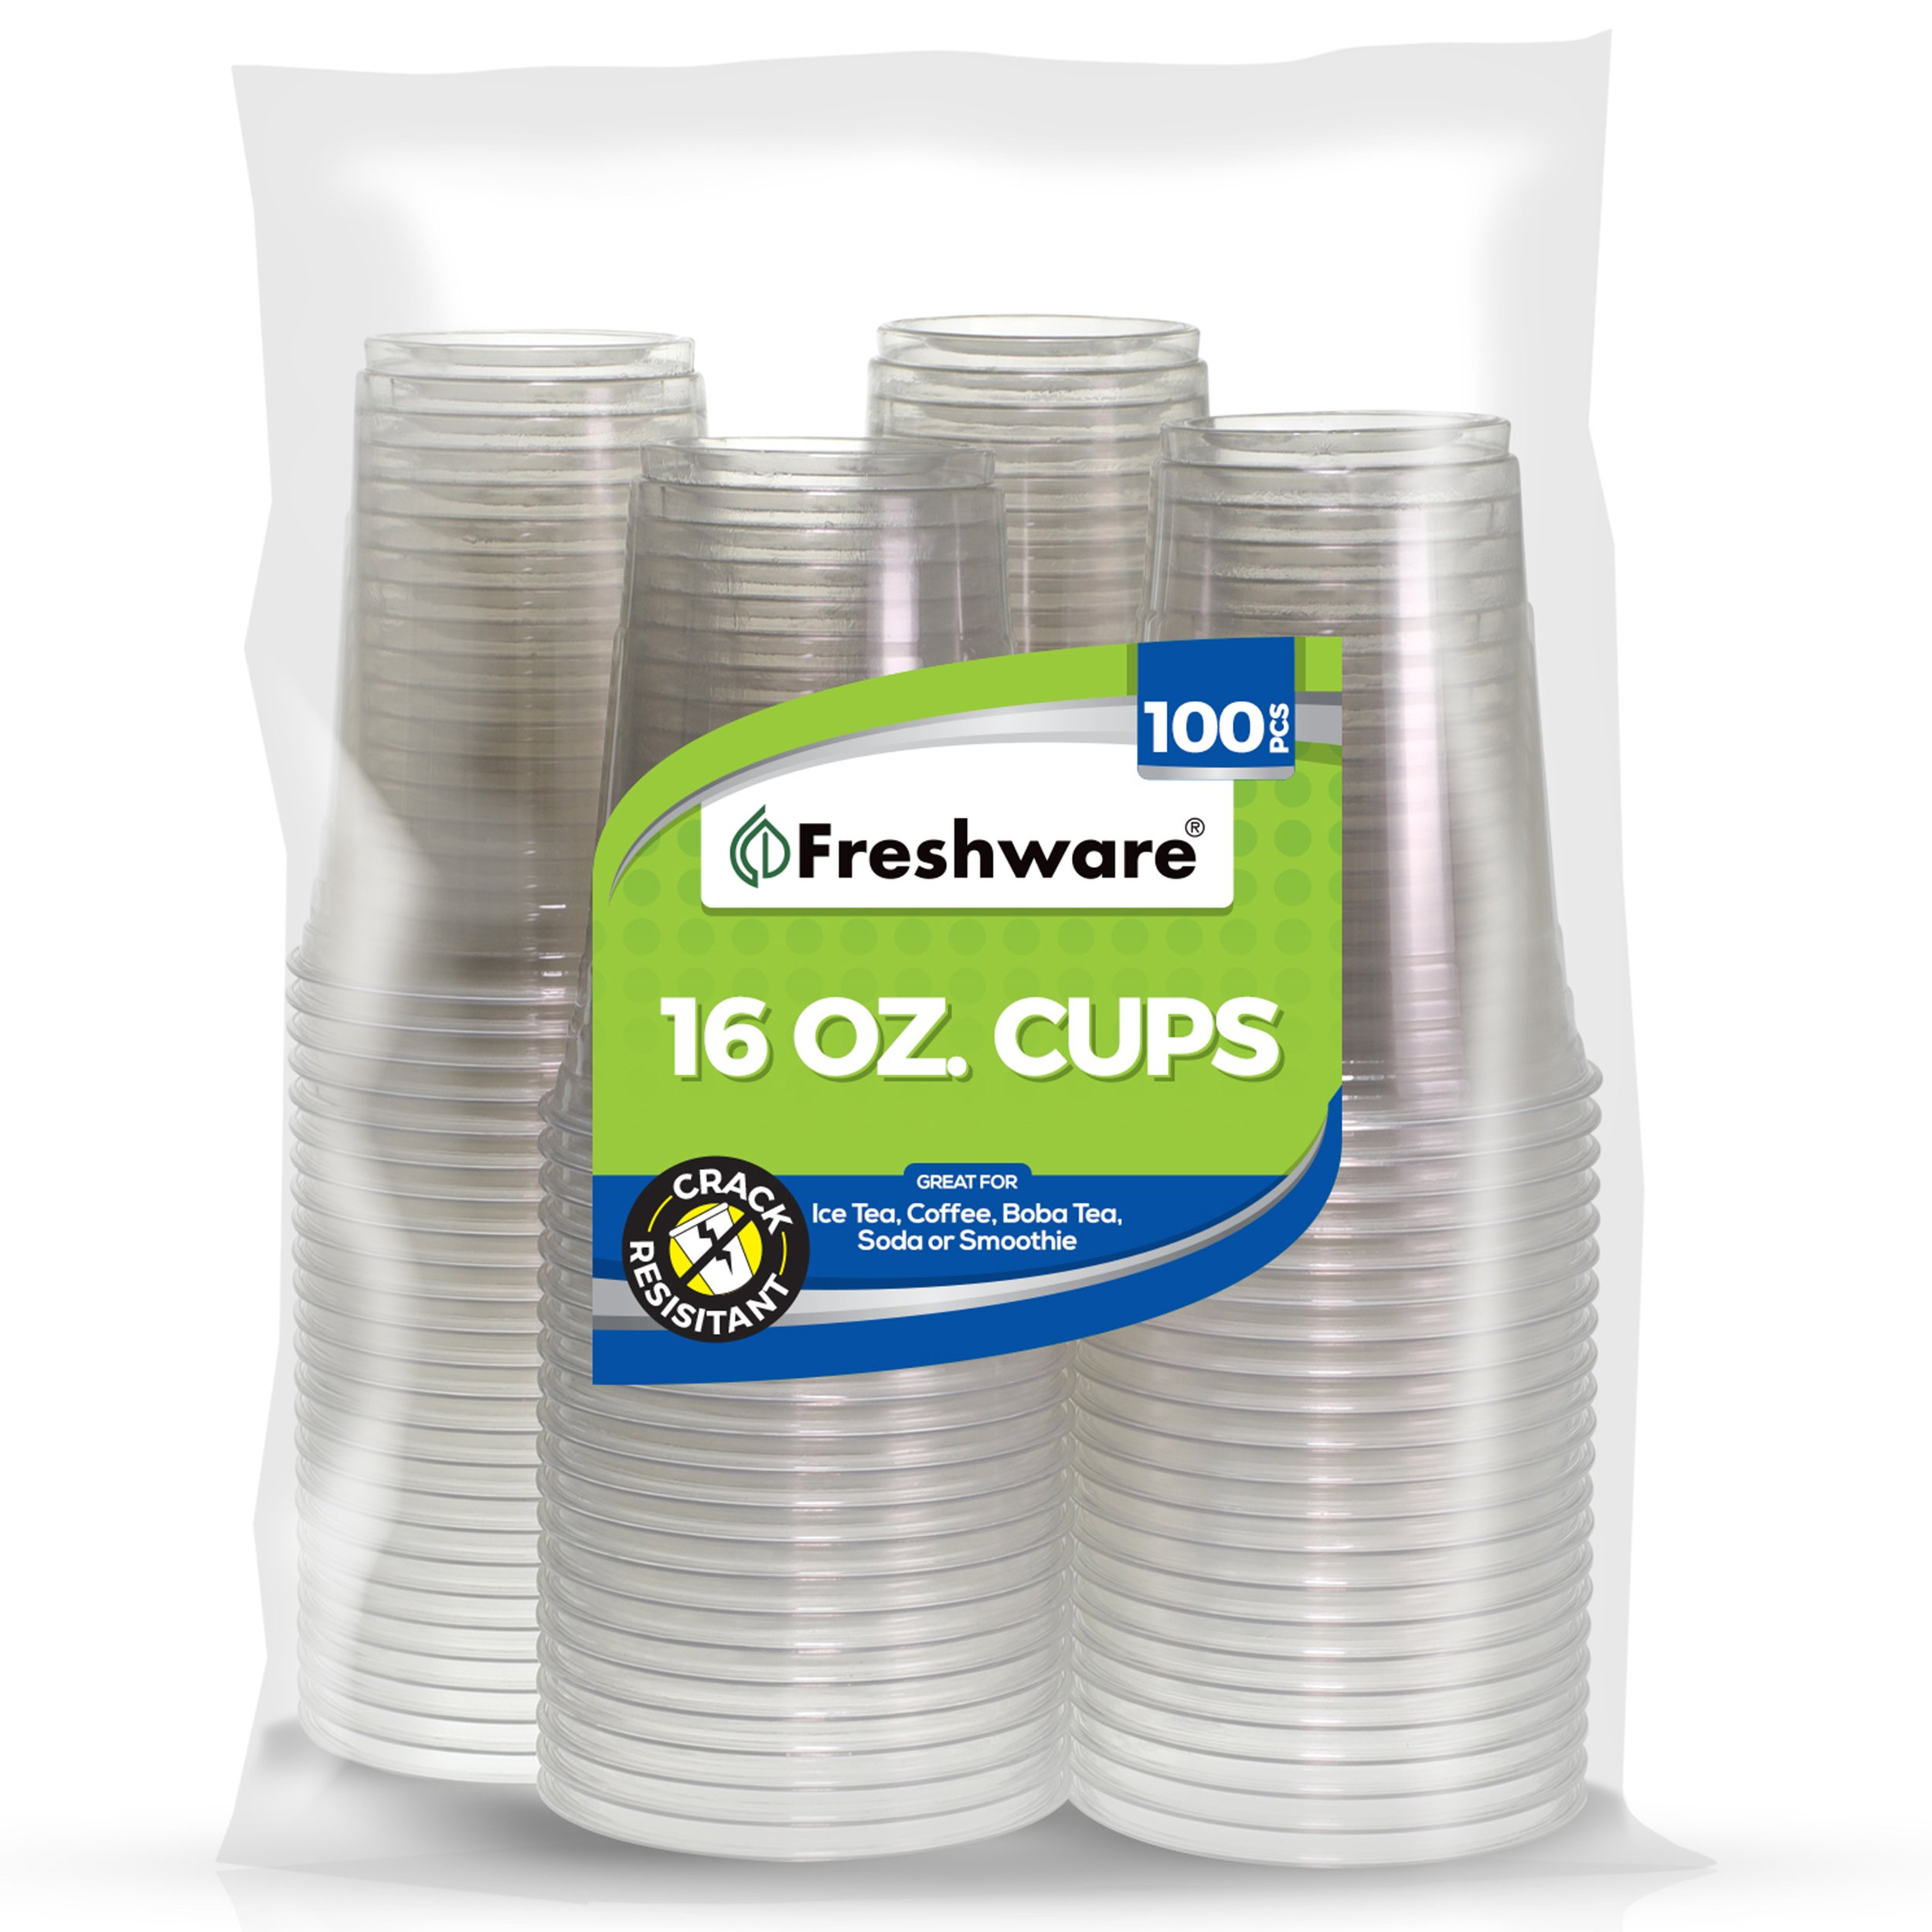 Freshware Clear, Heavy-Duty 16 oz Disposable Plastic Cups, BPA Free (100 Pieces)